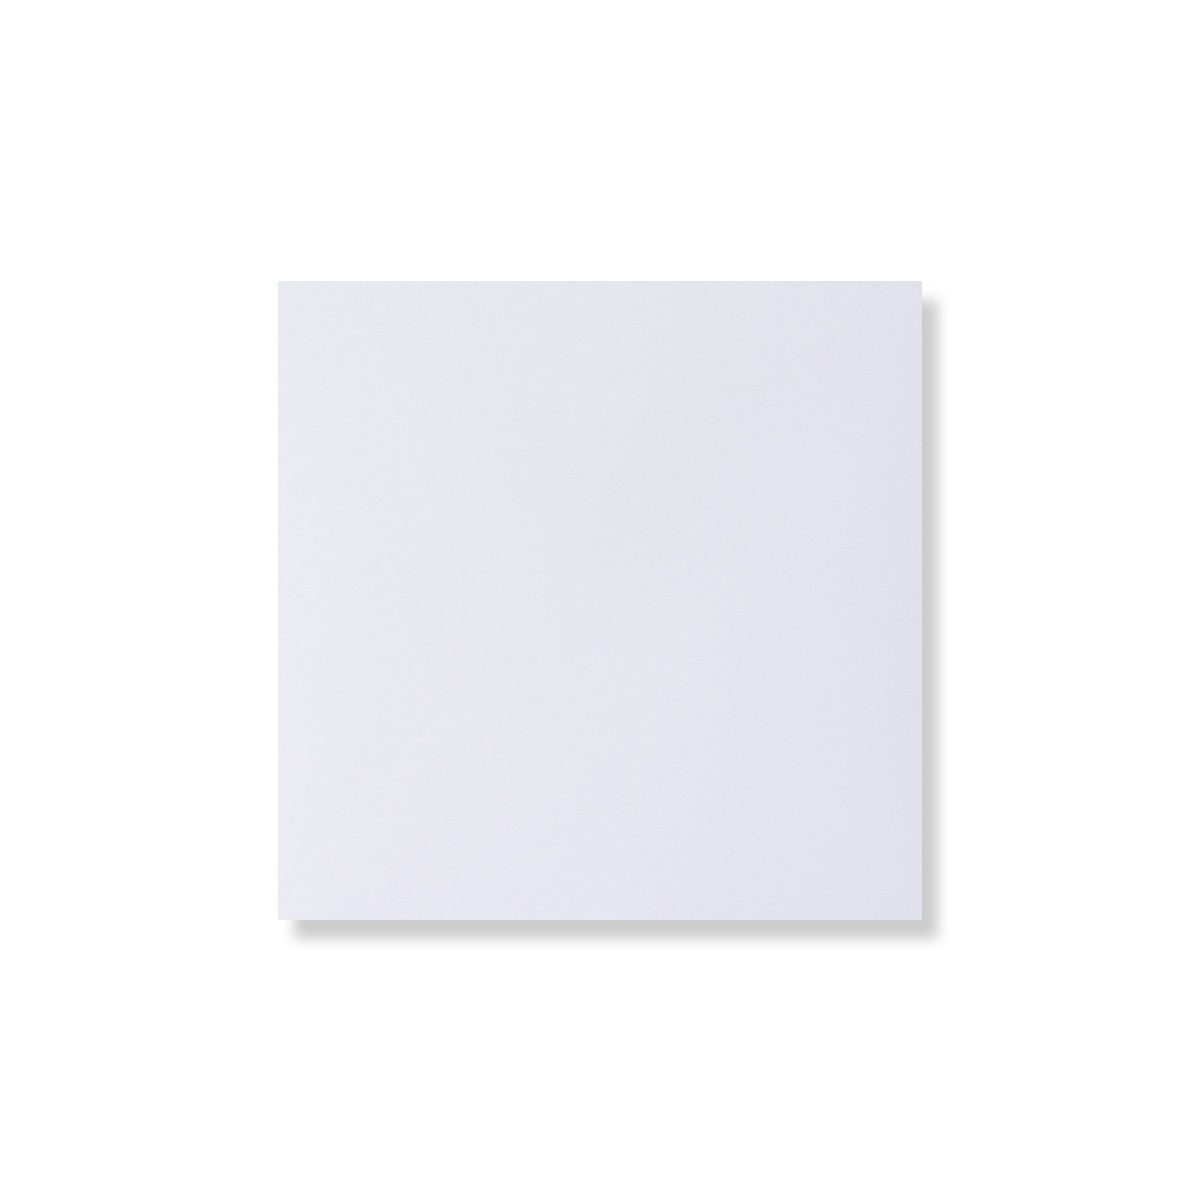 WHITE 140mm SQUARE ENVELOPE 120GSM